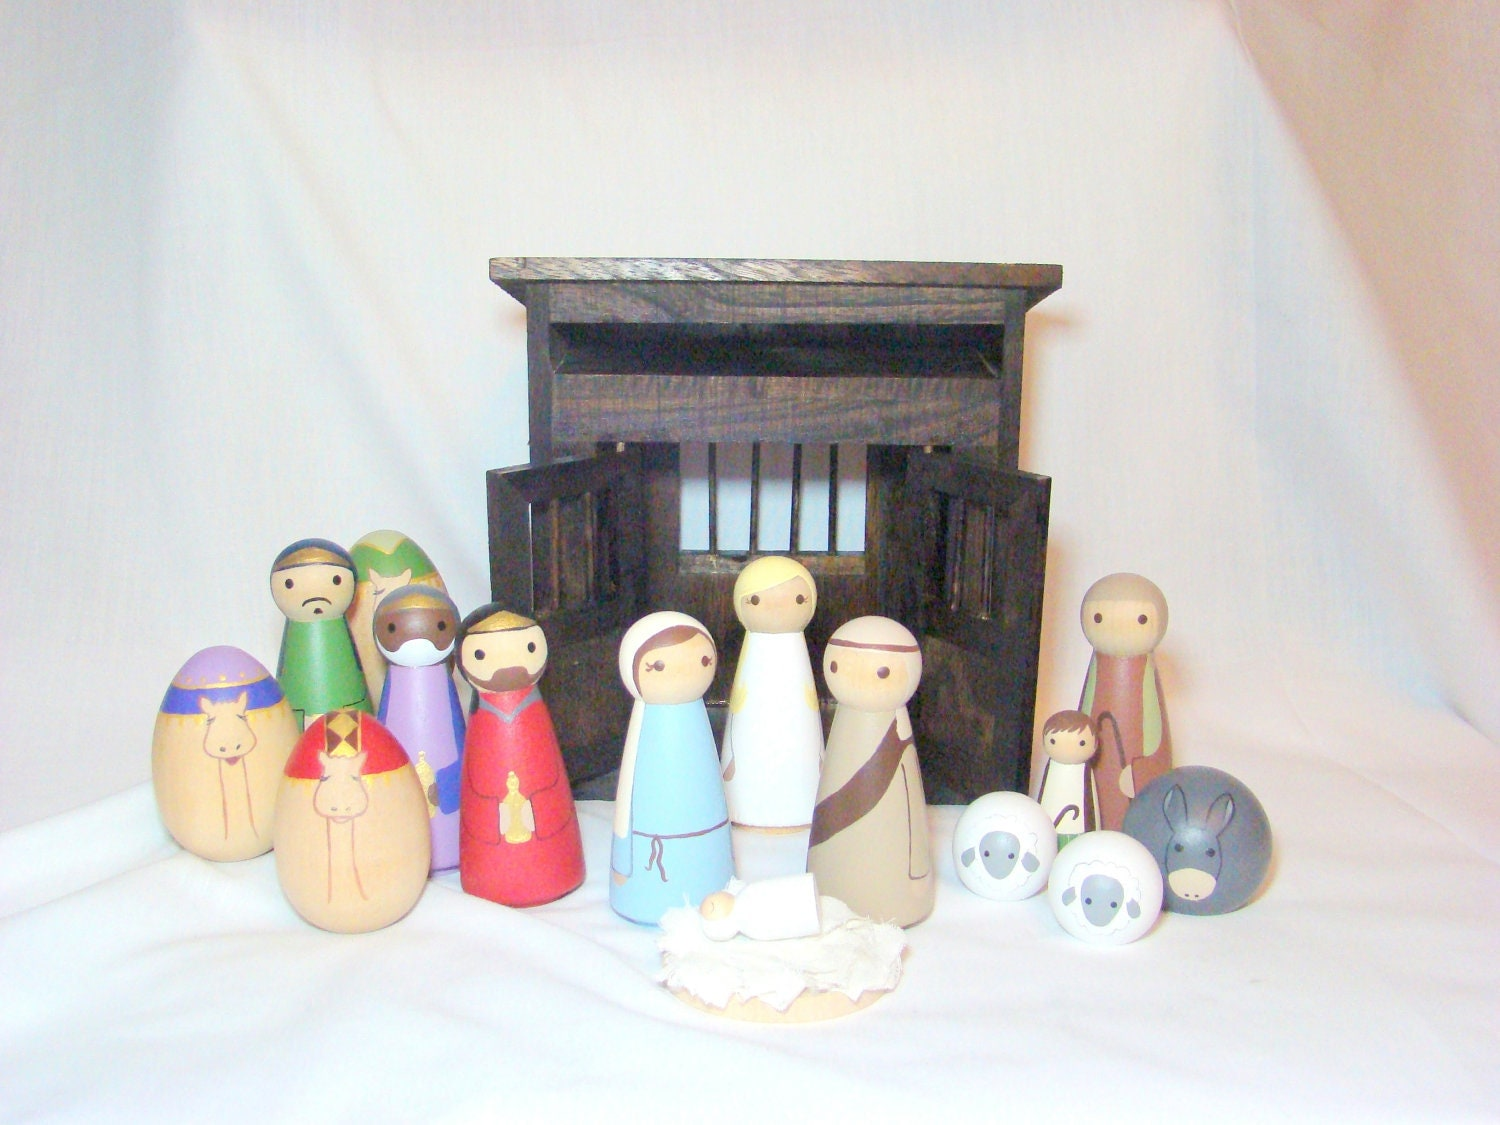 Nativity Set - 16 pc Wood Peg Doll/People Nativity Set Hand Painted